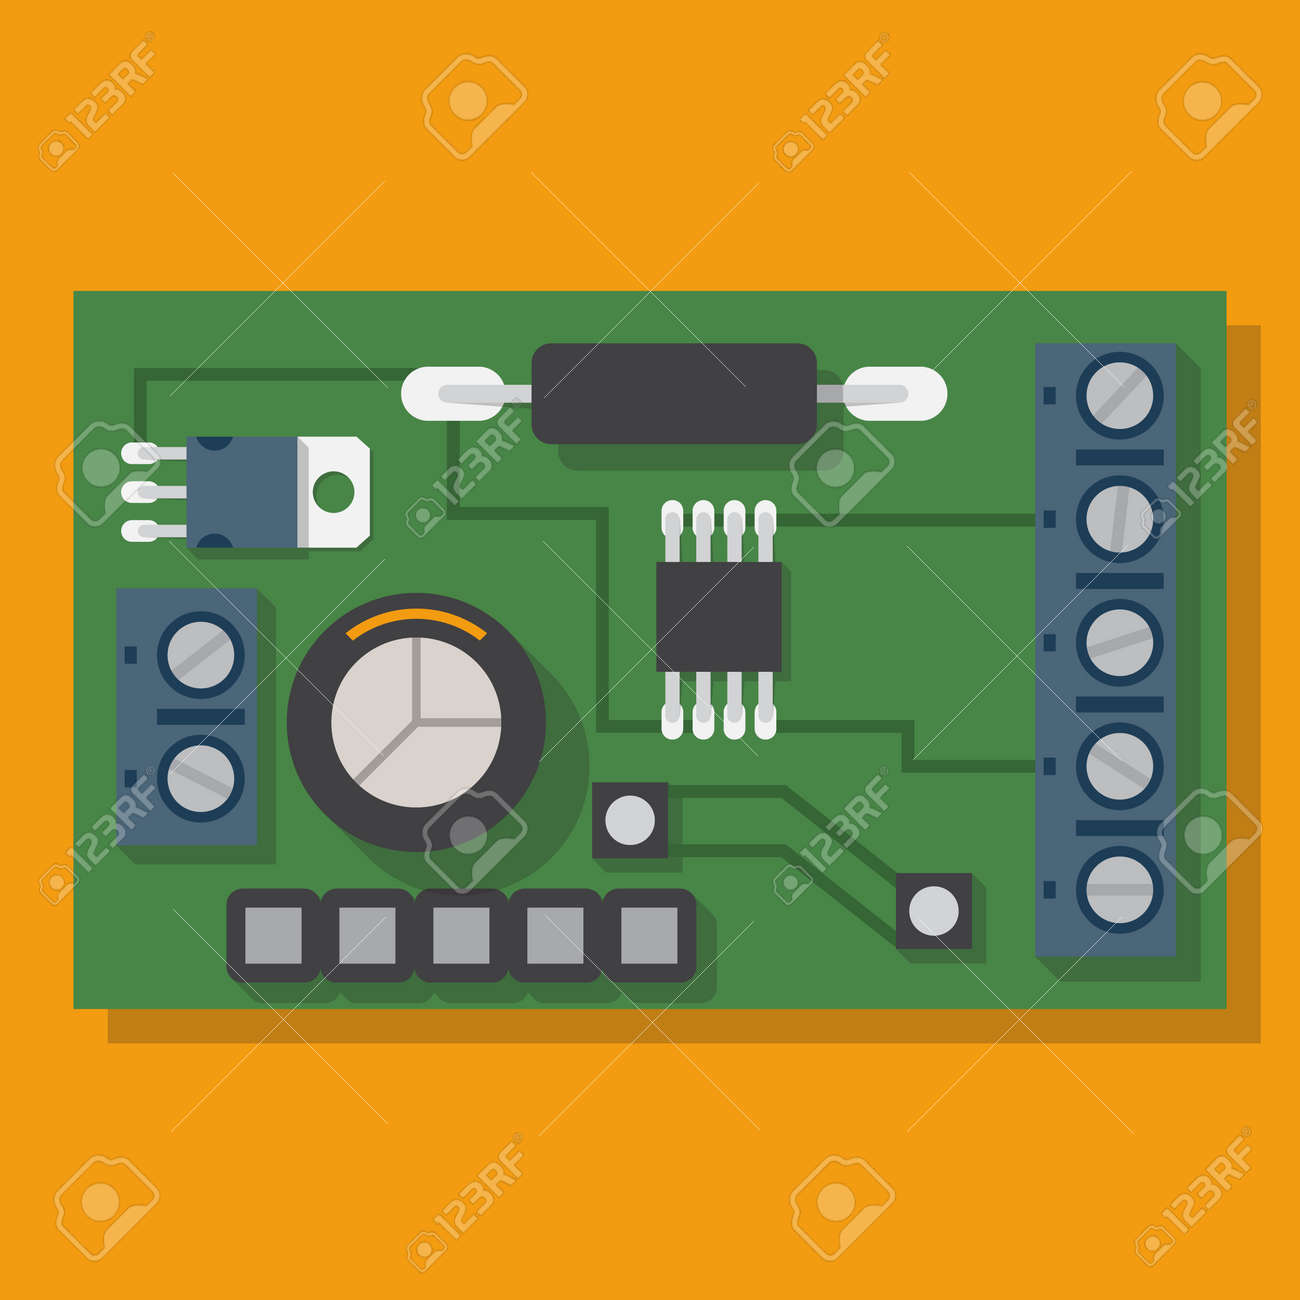 Electronic Board Motherboard Spare Computer Vector Illustration Circuit Design Program Free Flat Equipment